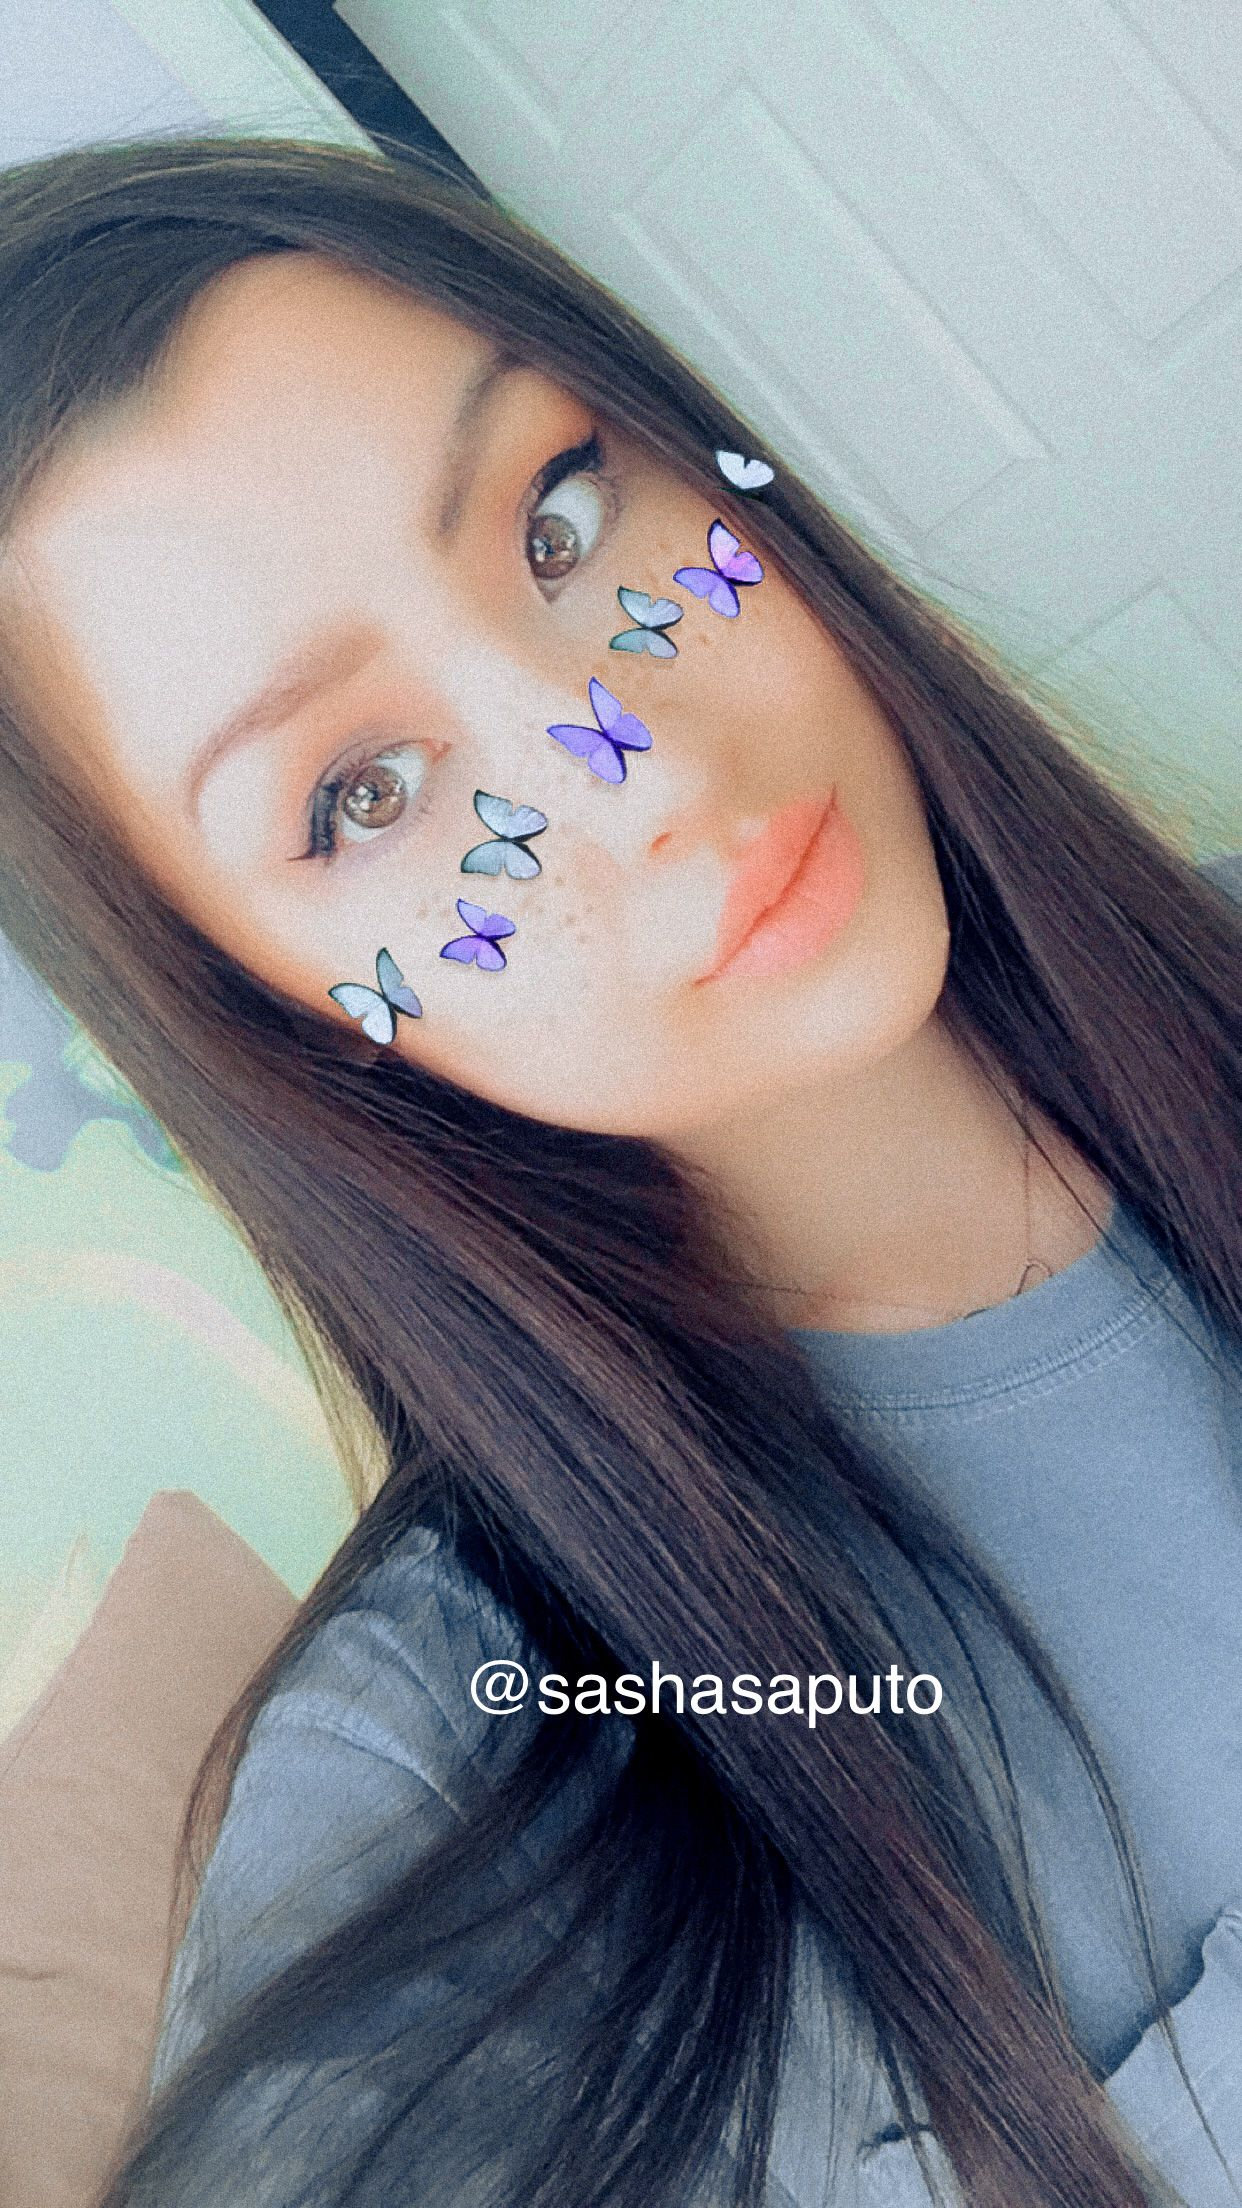 Im sasha ill be using this profile for inspo for my